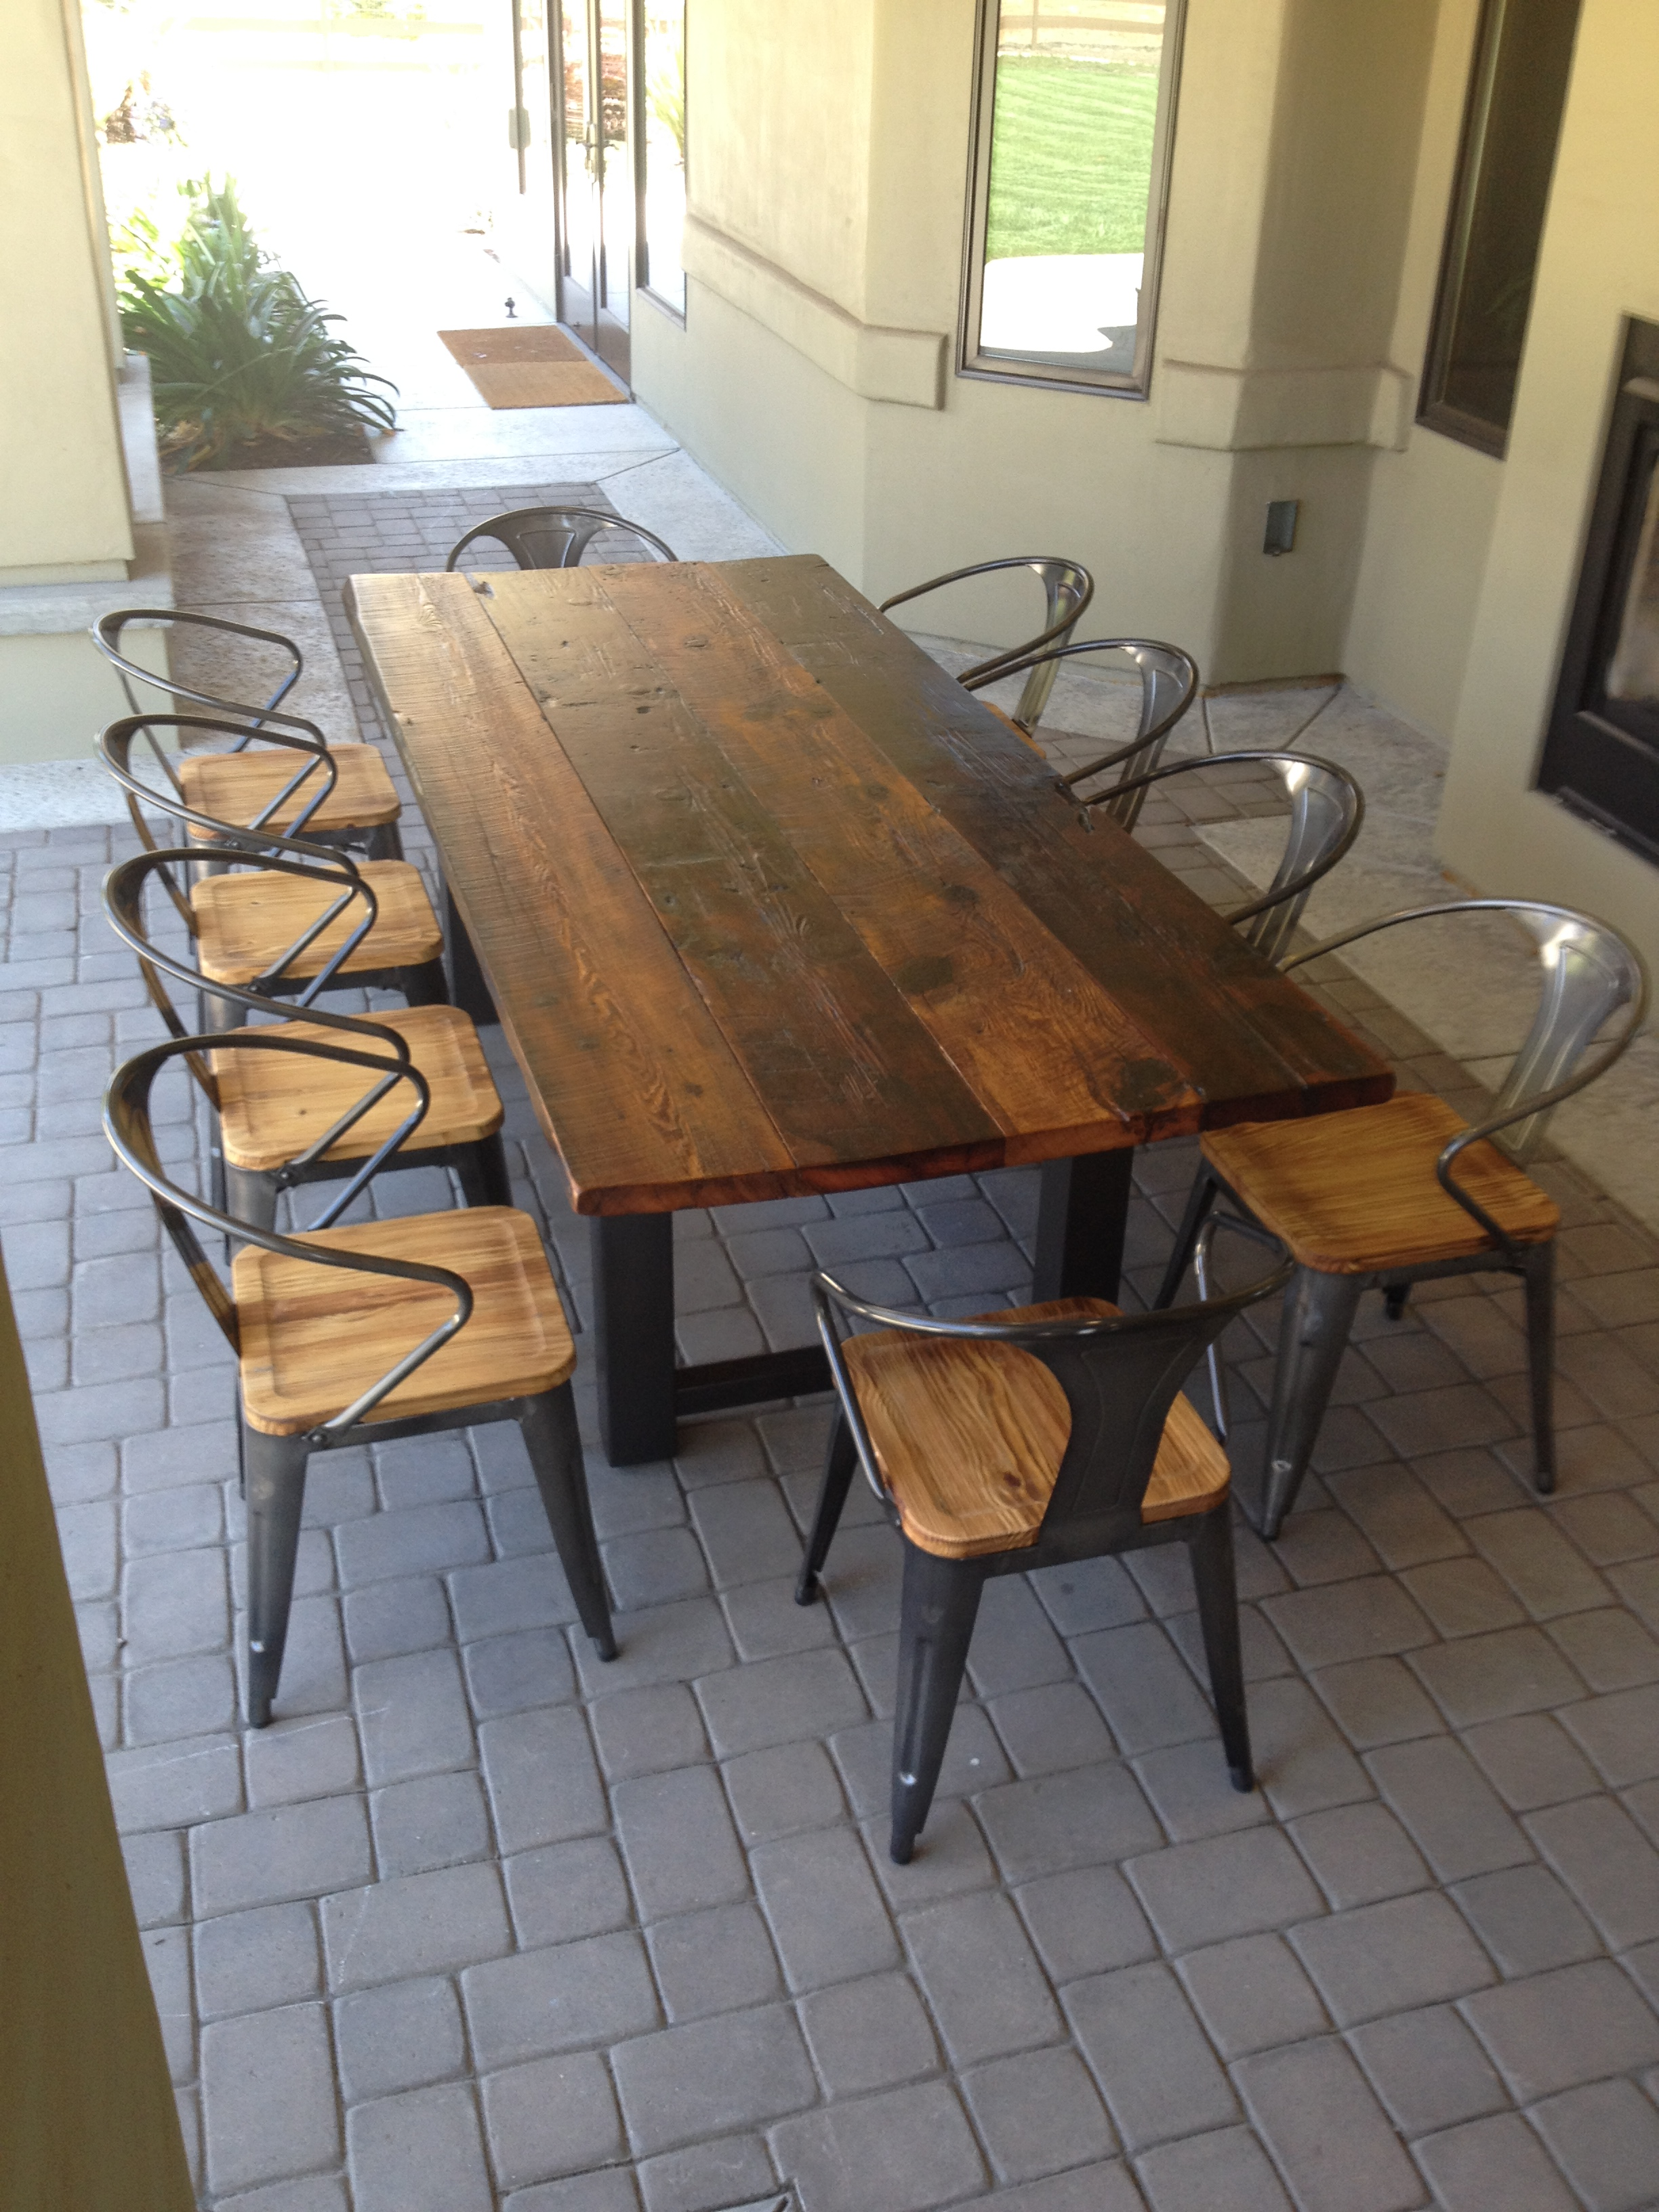 Delicieux Reclaimed Wood And Steel Outdoor Dining Table